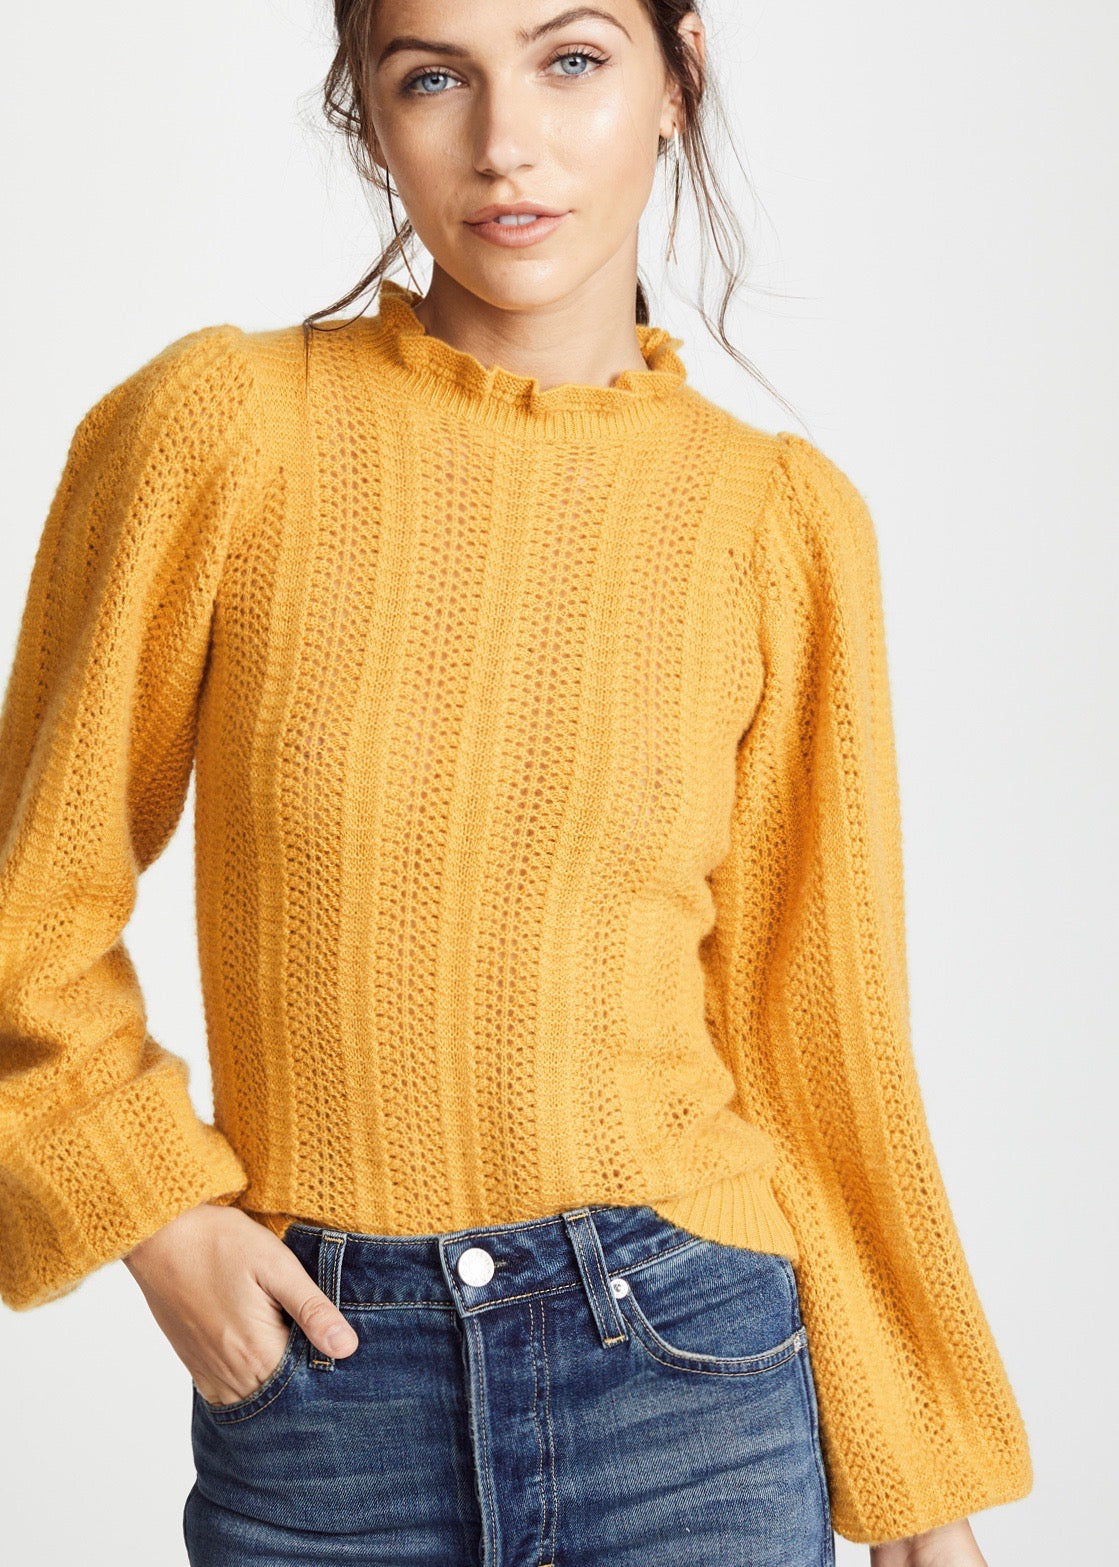 Ulla Johnson Dionne pullover in mustard